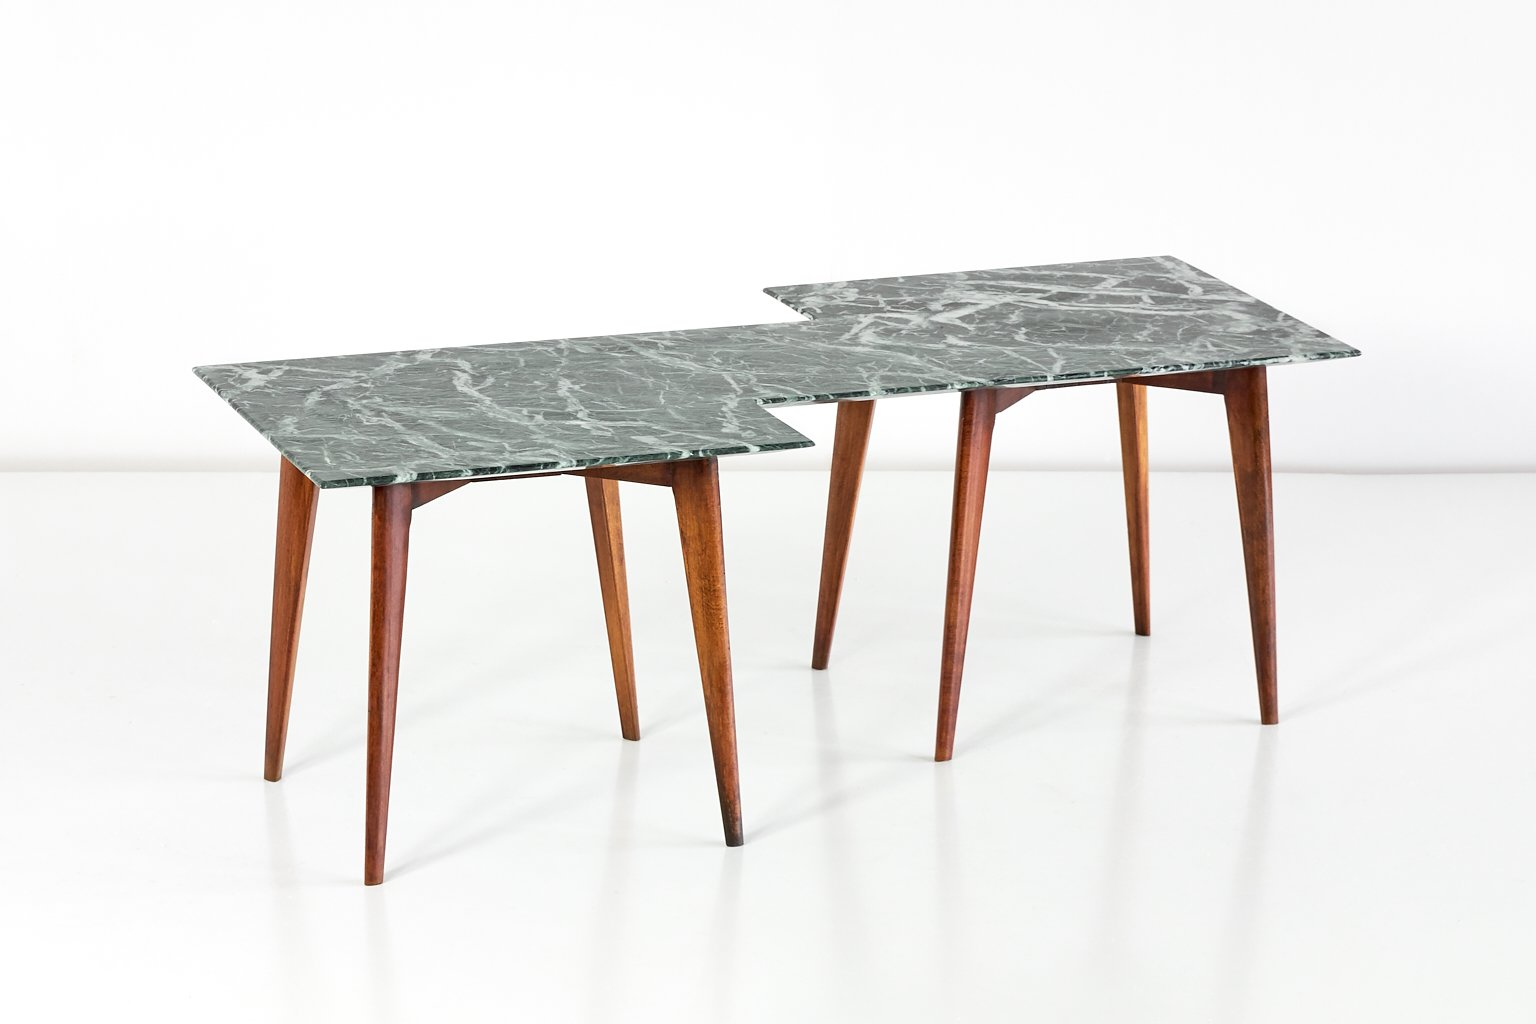 Italian Coffee Tables Marble Geometric Italian Coffee Table With Green Marble Top For Sale At